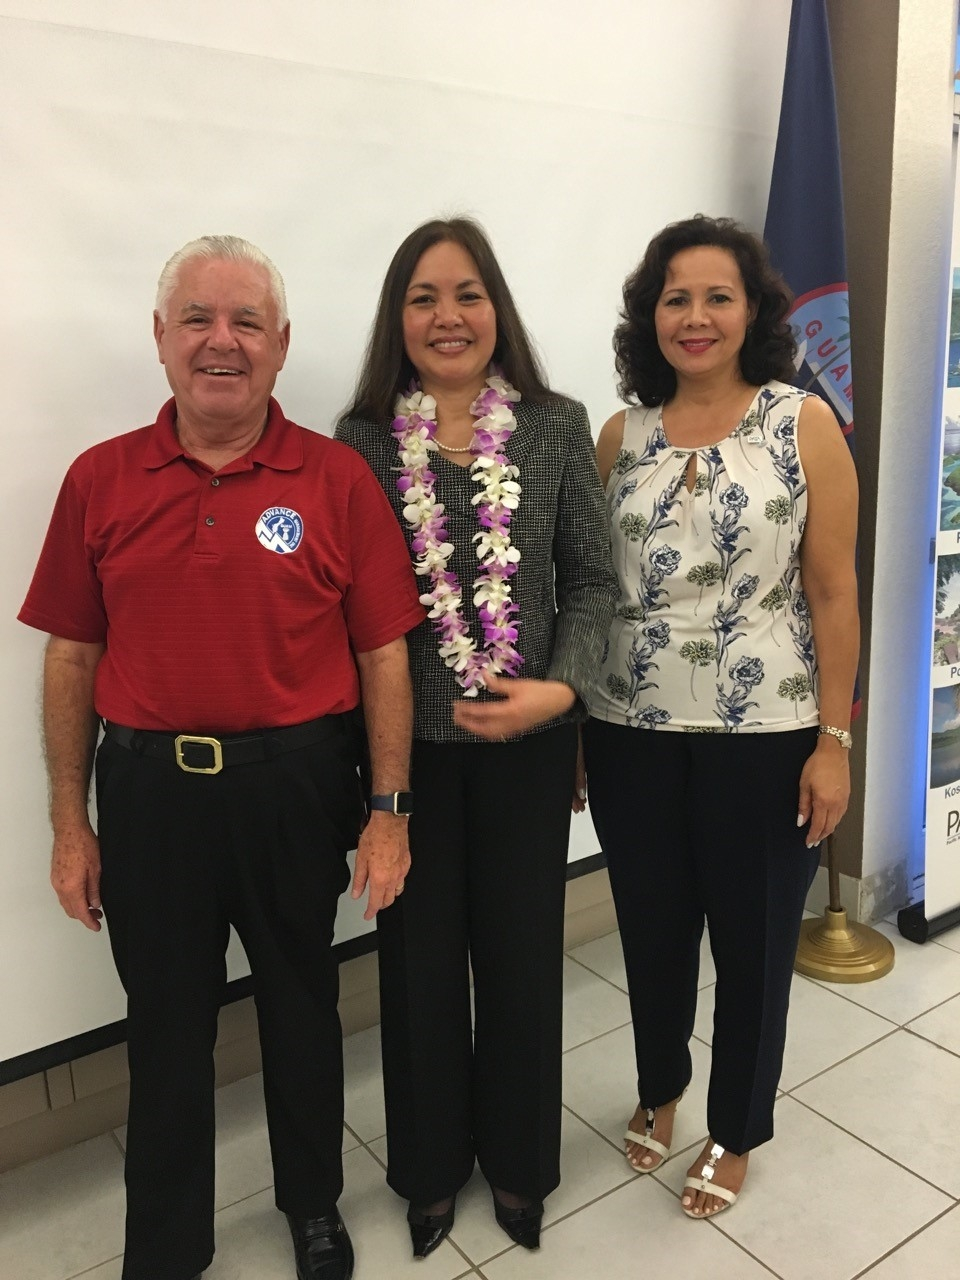 Picture of Monty McDowell, Member, PATA Board of Directors/Assistant Secretary Education Committee Co-Chair, U.S. Attorney Alicia Limtiaco and Pilar Laguana, President of PATA